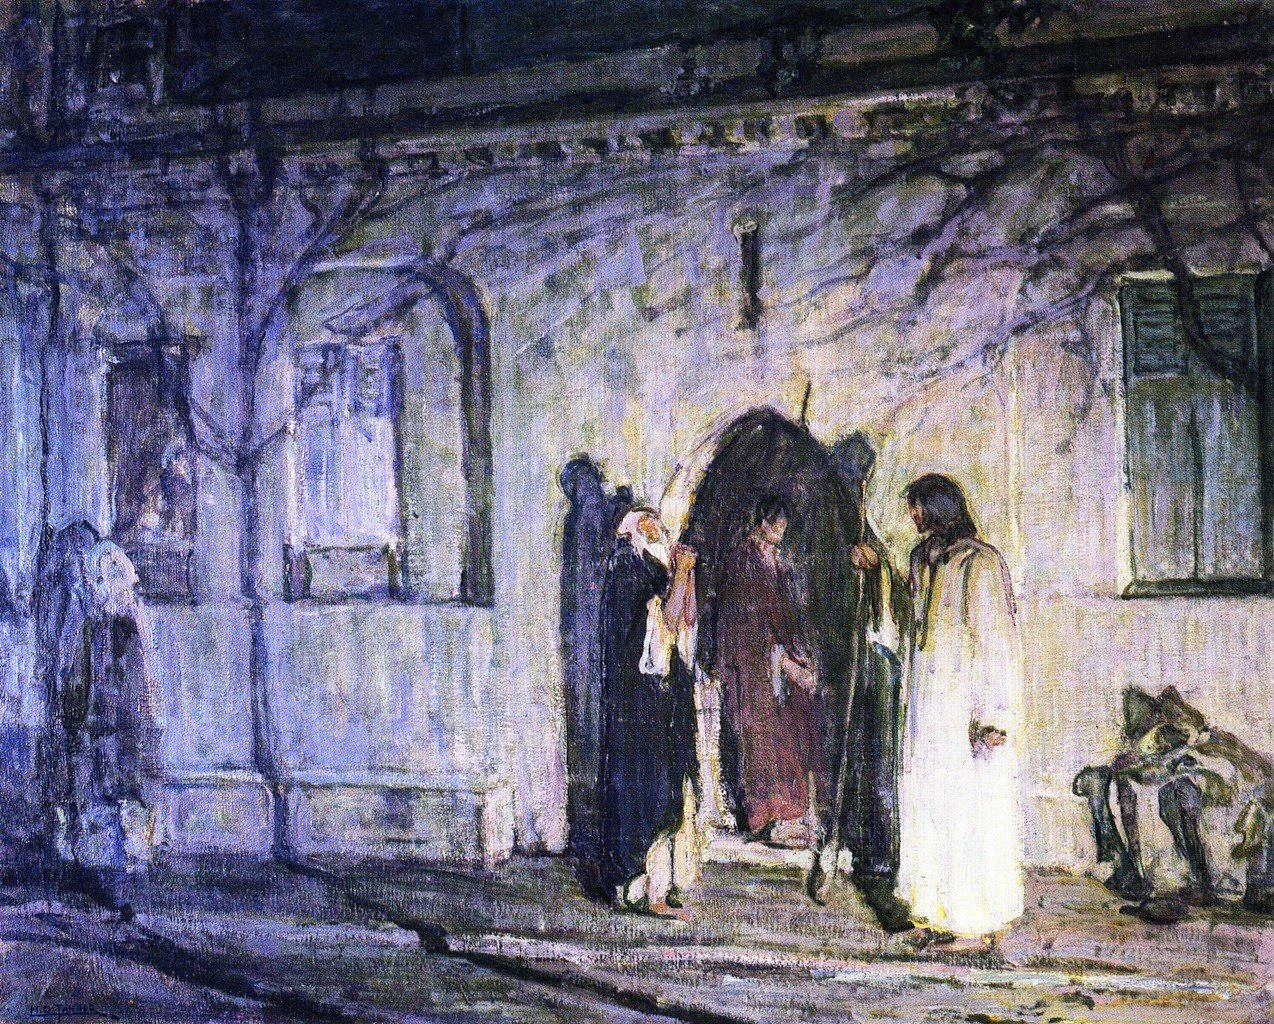 Christ with the Canaanite Woman and Her娘 – by Henry Ossawa Tanner – Unframed 20